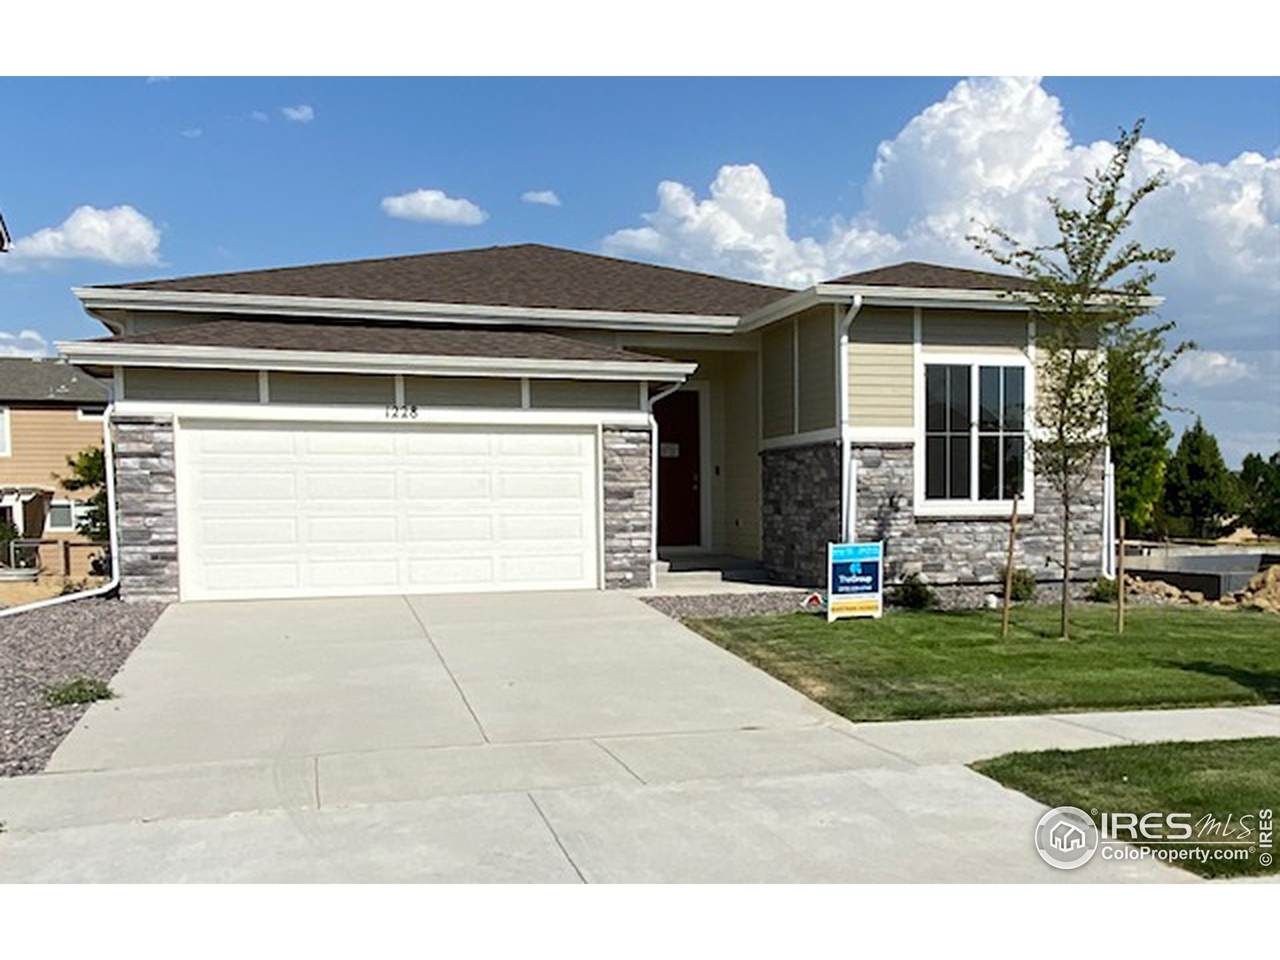 1228 103rd Ave Ct - Photo 1